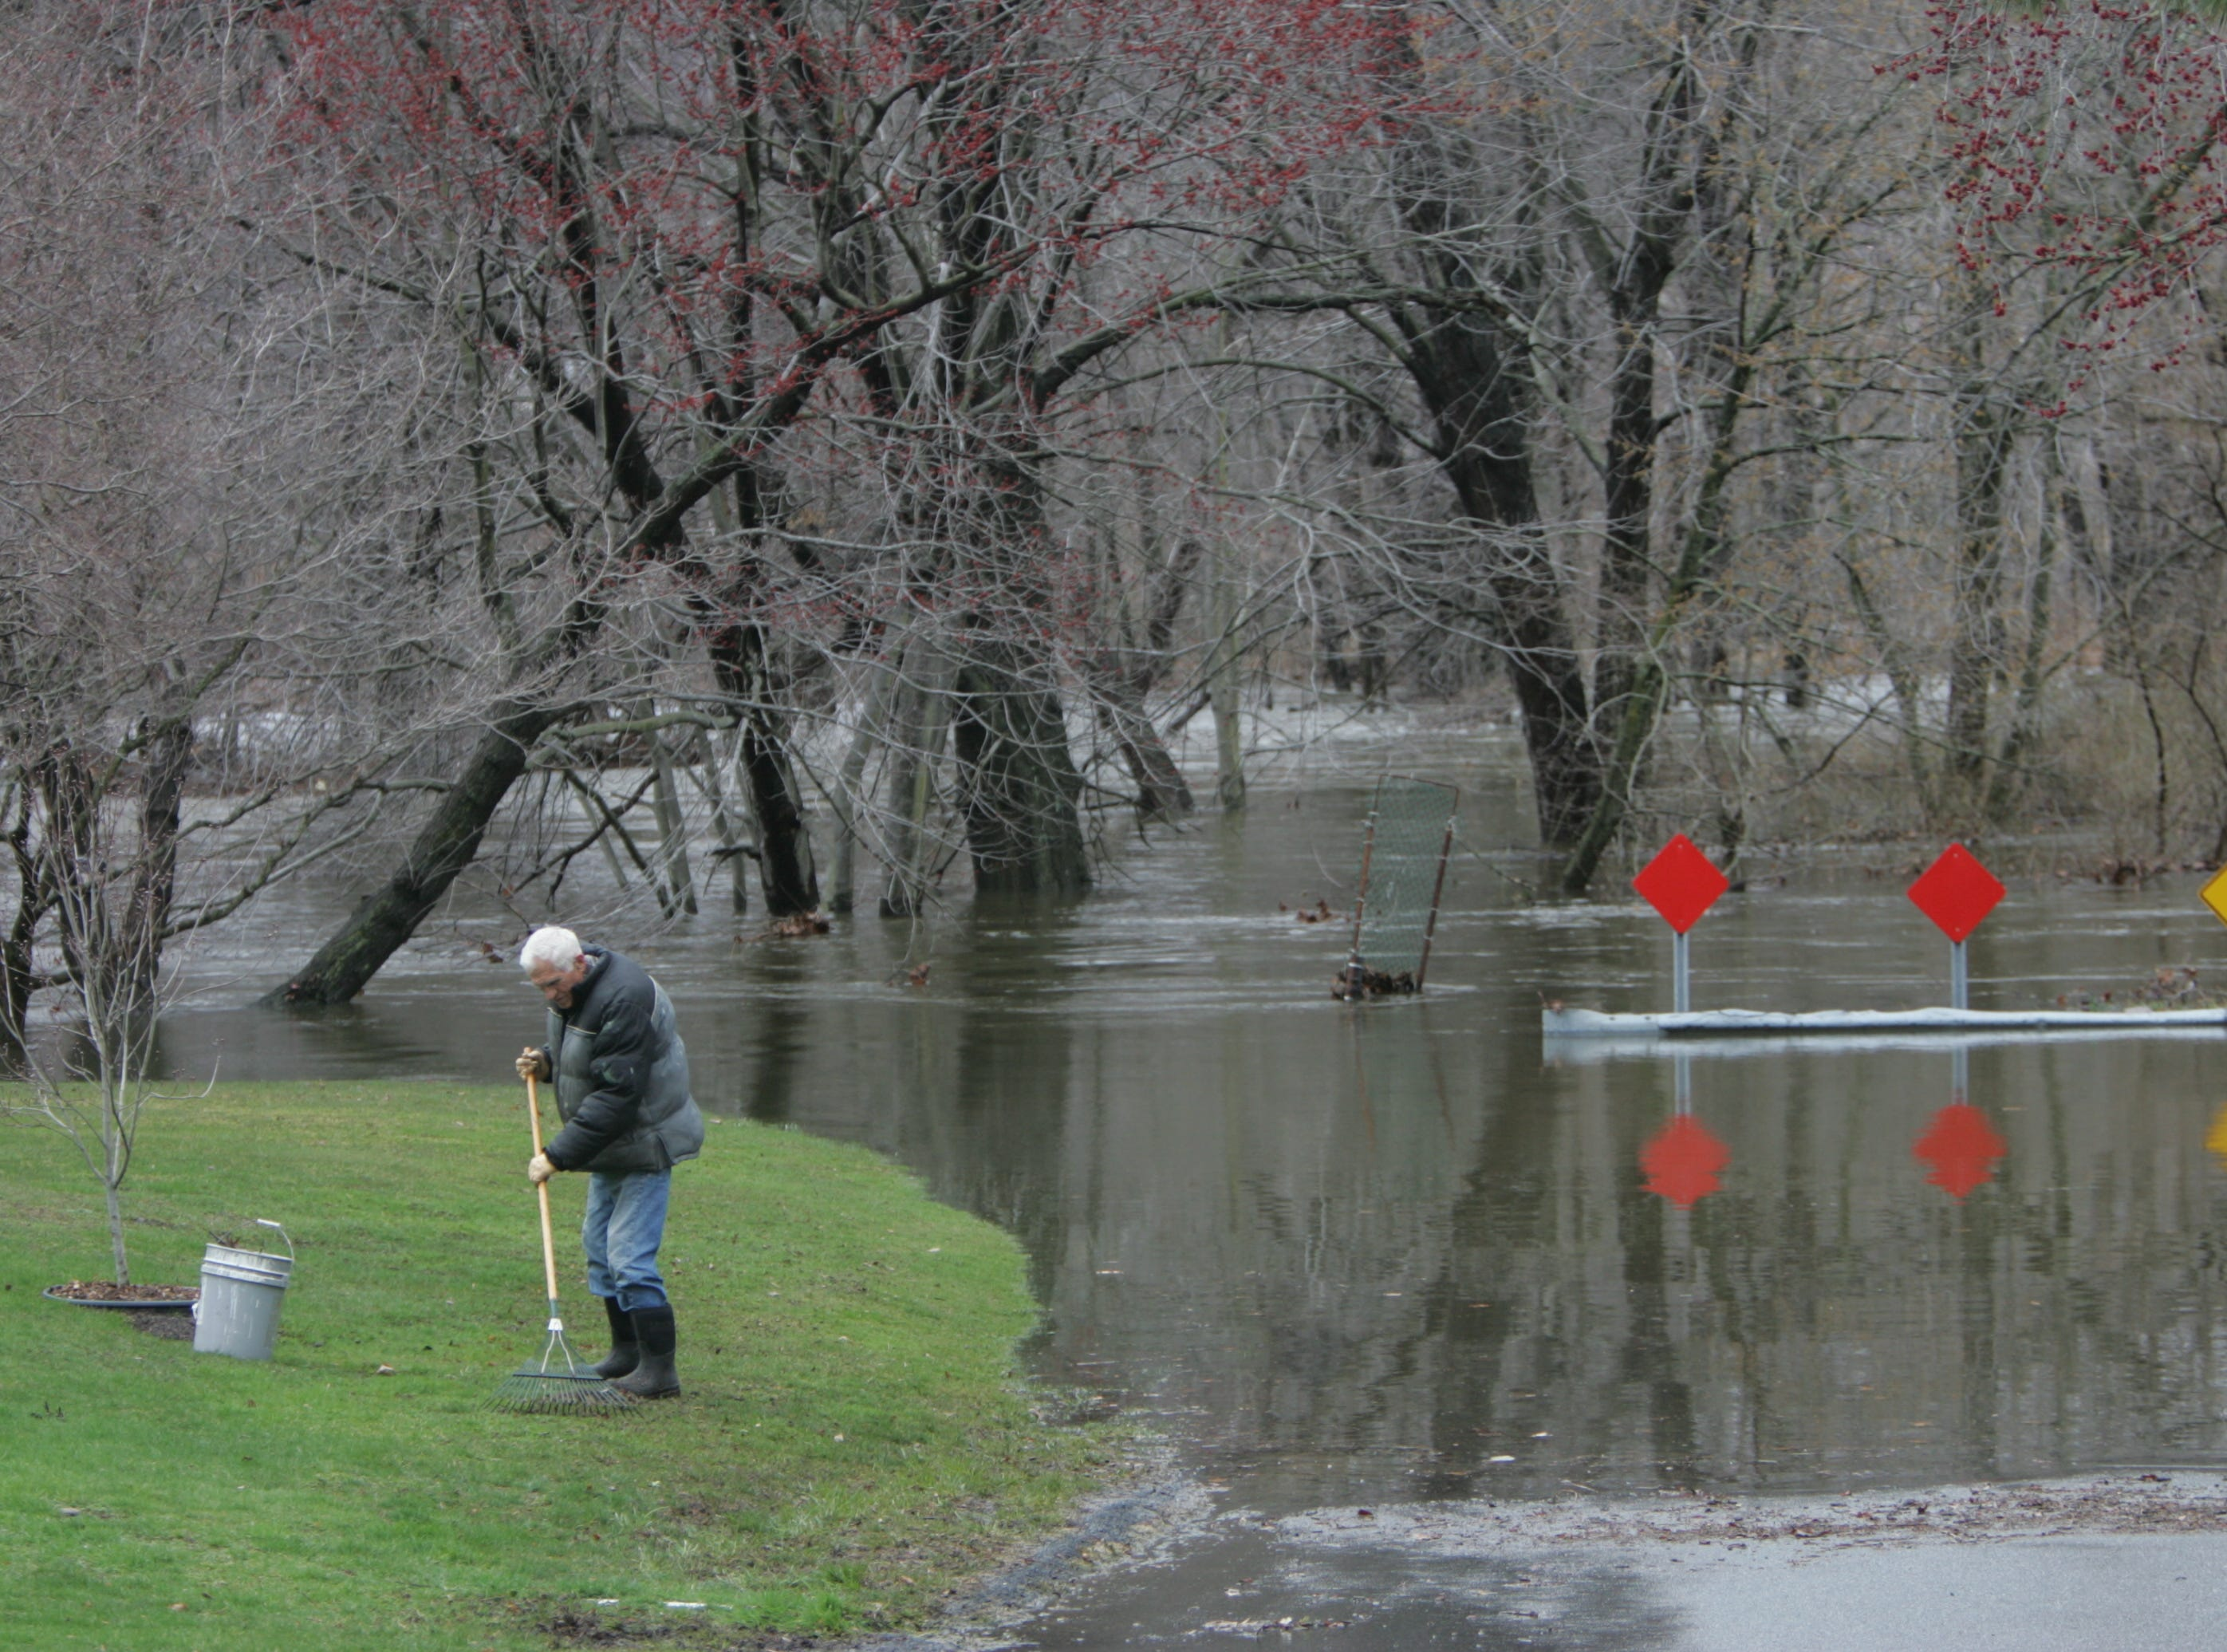 April 16, 2007: 76-year-old Sigmund Strysko rakes debris from his lawn, as flood waters recede follwing a Nor'Easter. His home is very close to where the Mahwah and Ramapo Rivers merge. He says only during Hurricane Floyd has he seen the water higher.